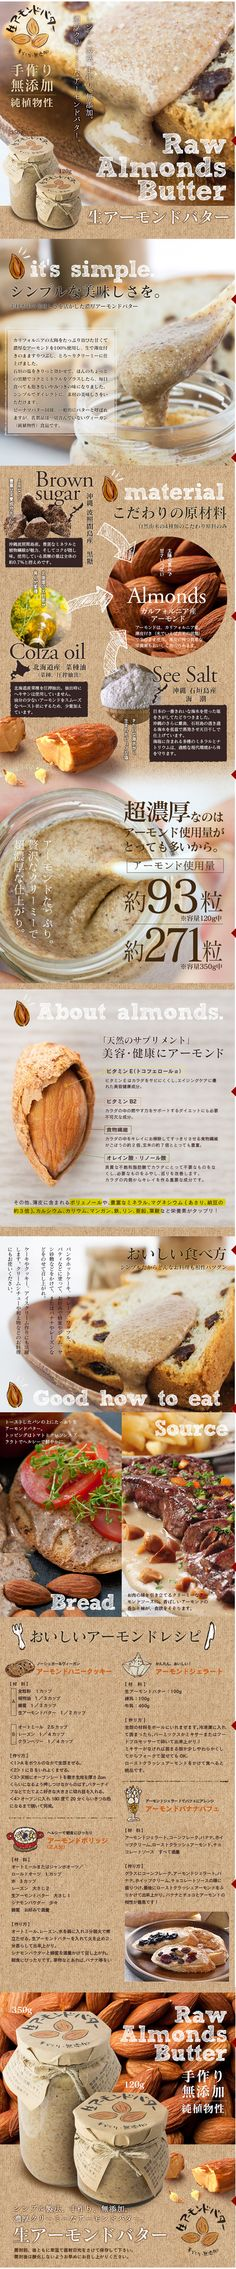 生アーモンドバター                                                                                                                                                                                 もっと見る Food Web Design, Best Web Design, Menu Design, Page Design, Branding Design, Japan Graphic Design, Japan Design, Menu Book, Graph Design